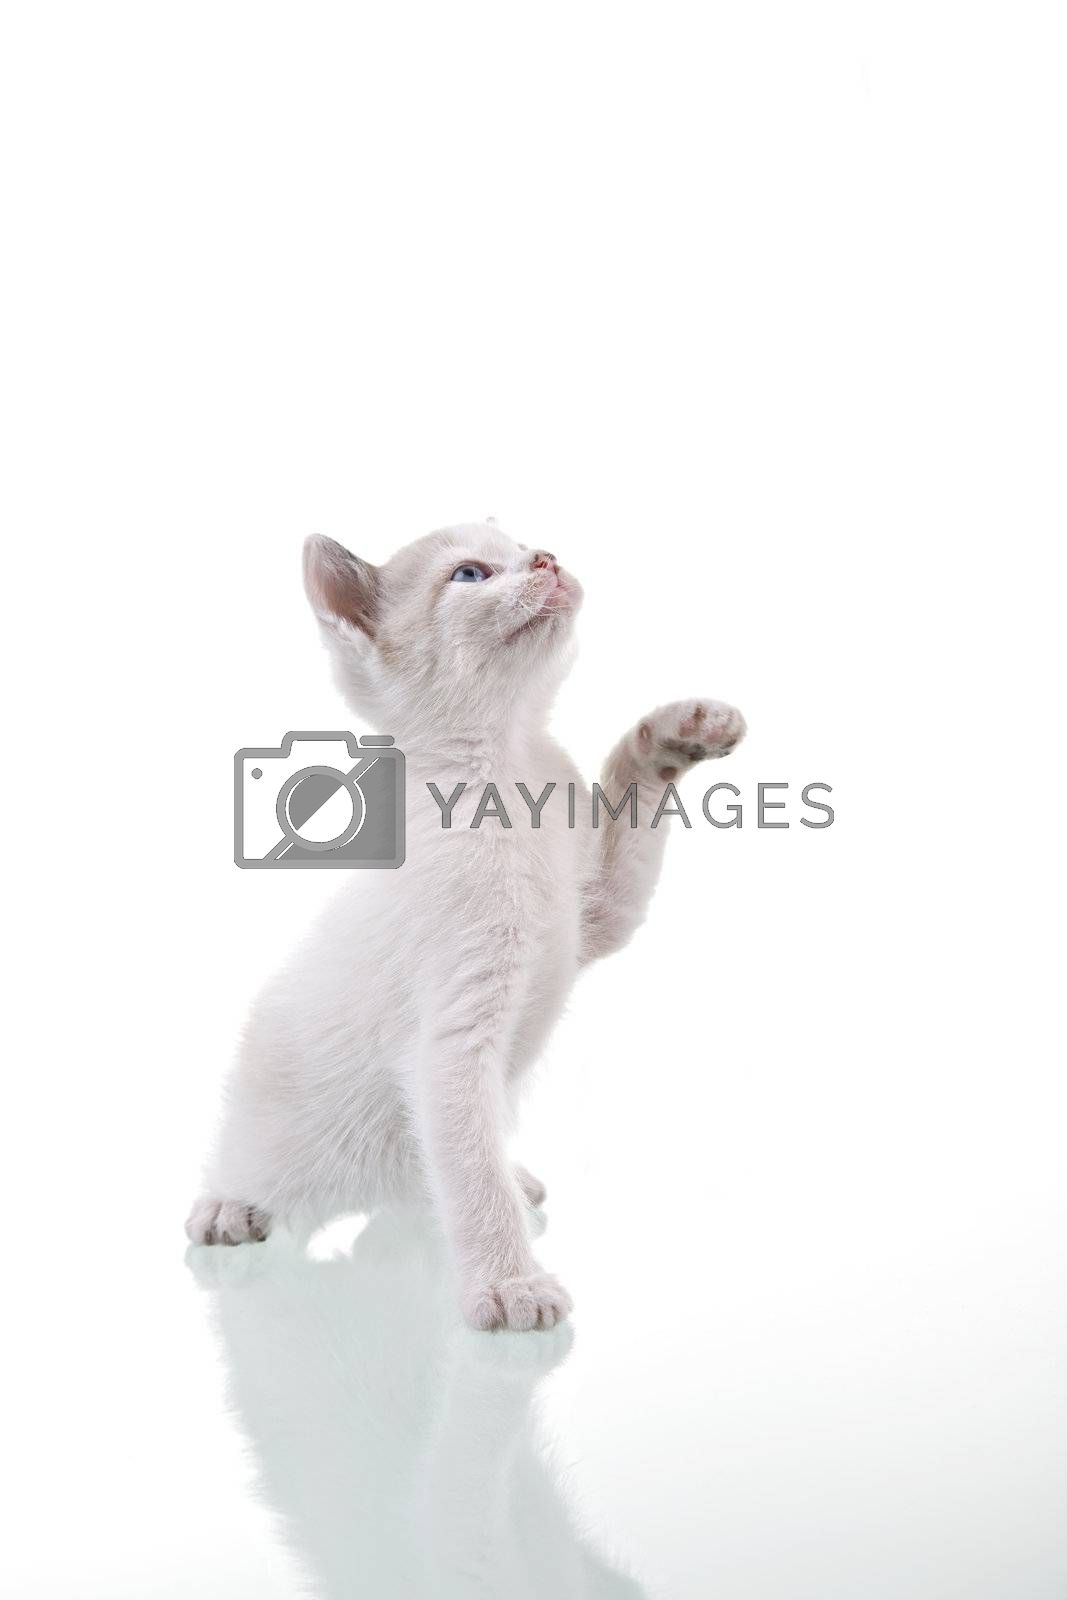 Adorable baby kitten playing. Isolated on white.